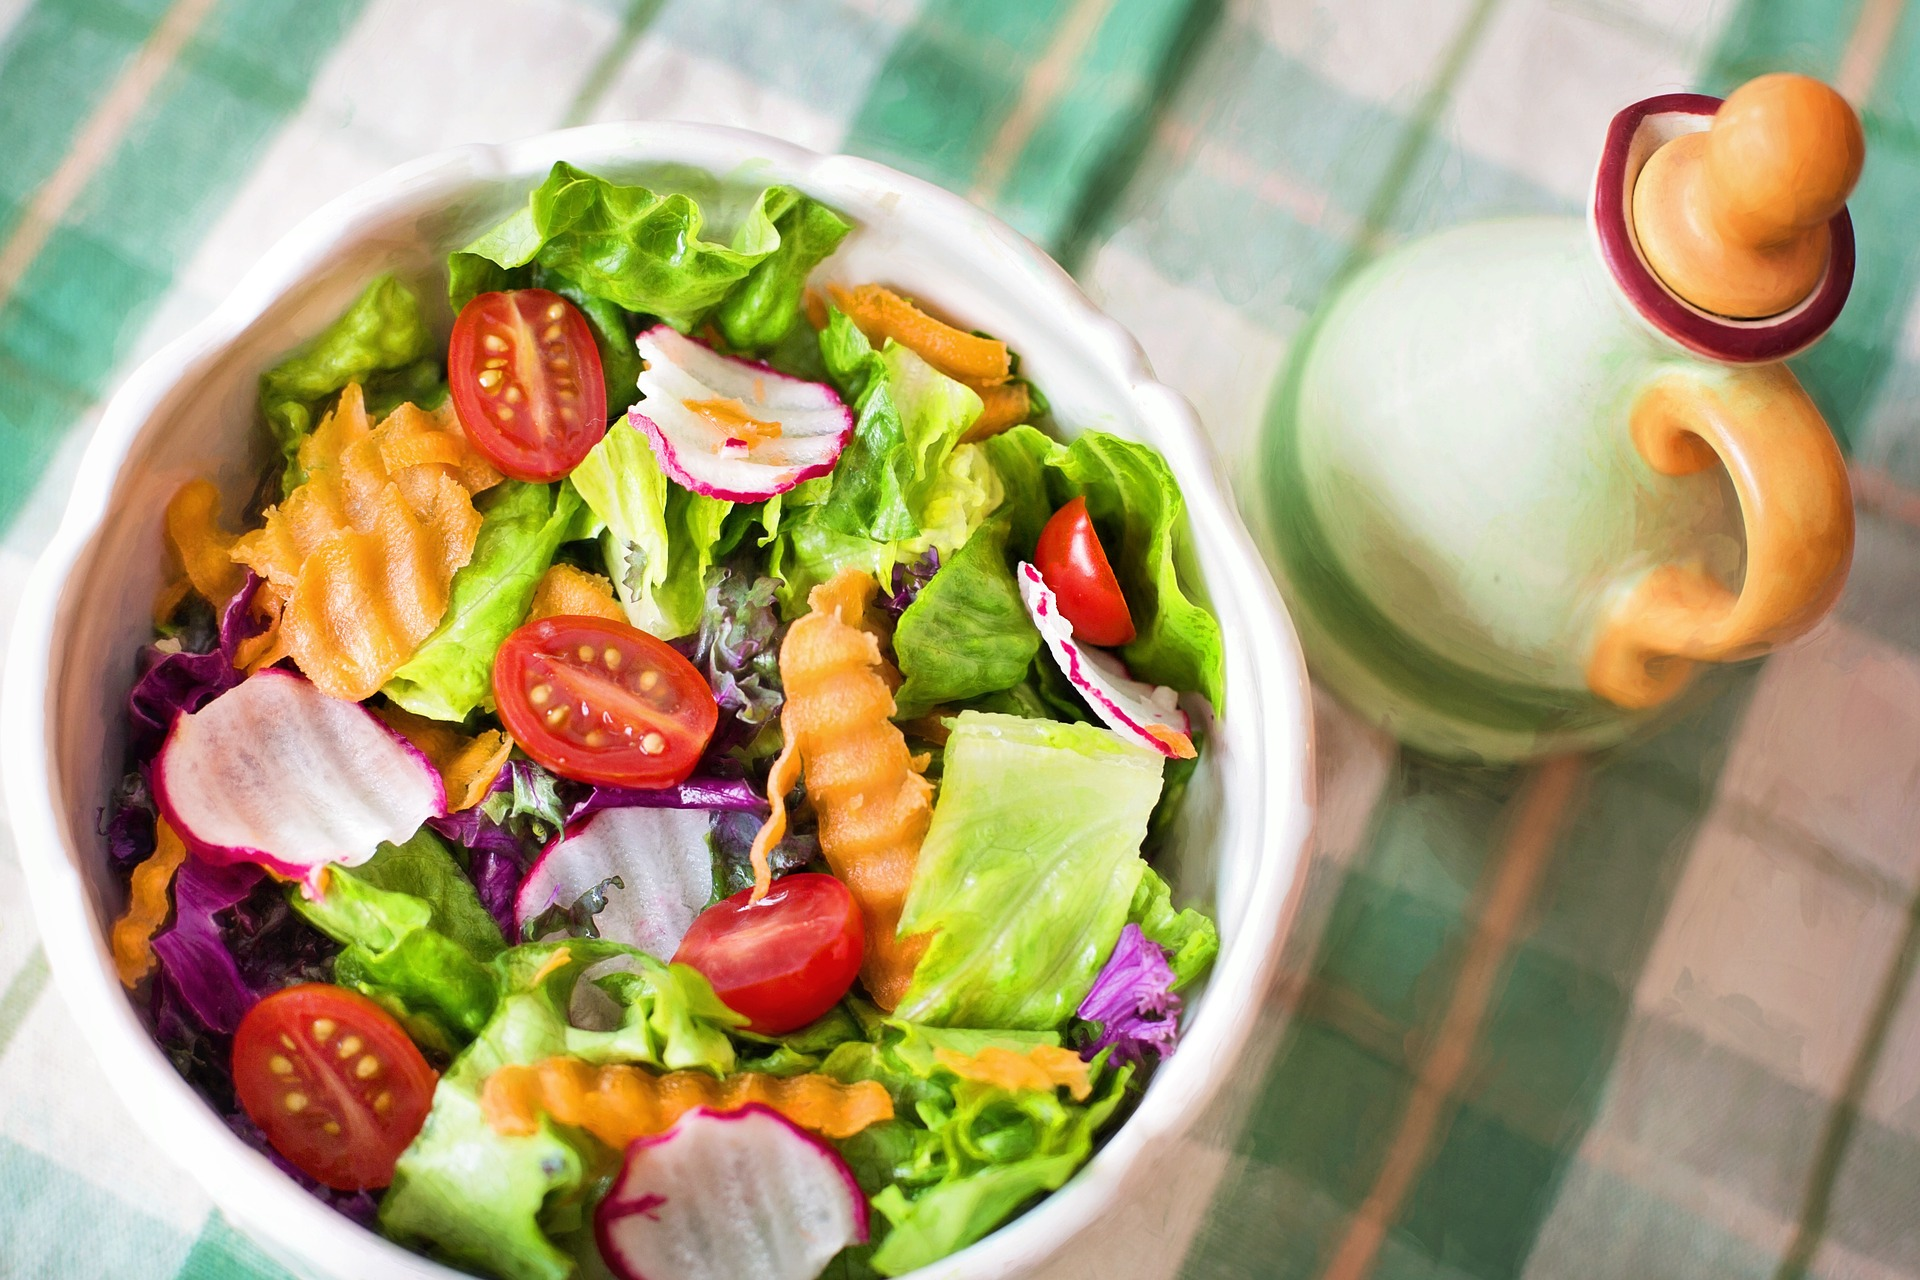 Plant Based Diet Boosts Weight Loss Twice As Effectively As A Traditional Diabetes Diet